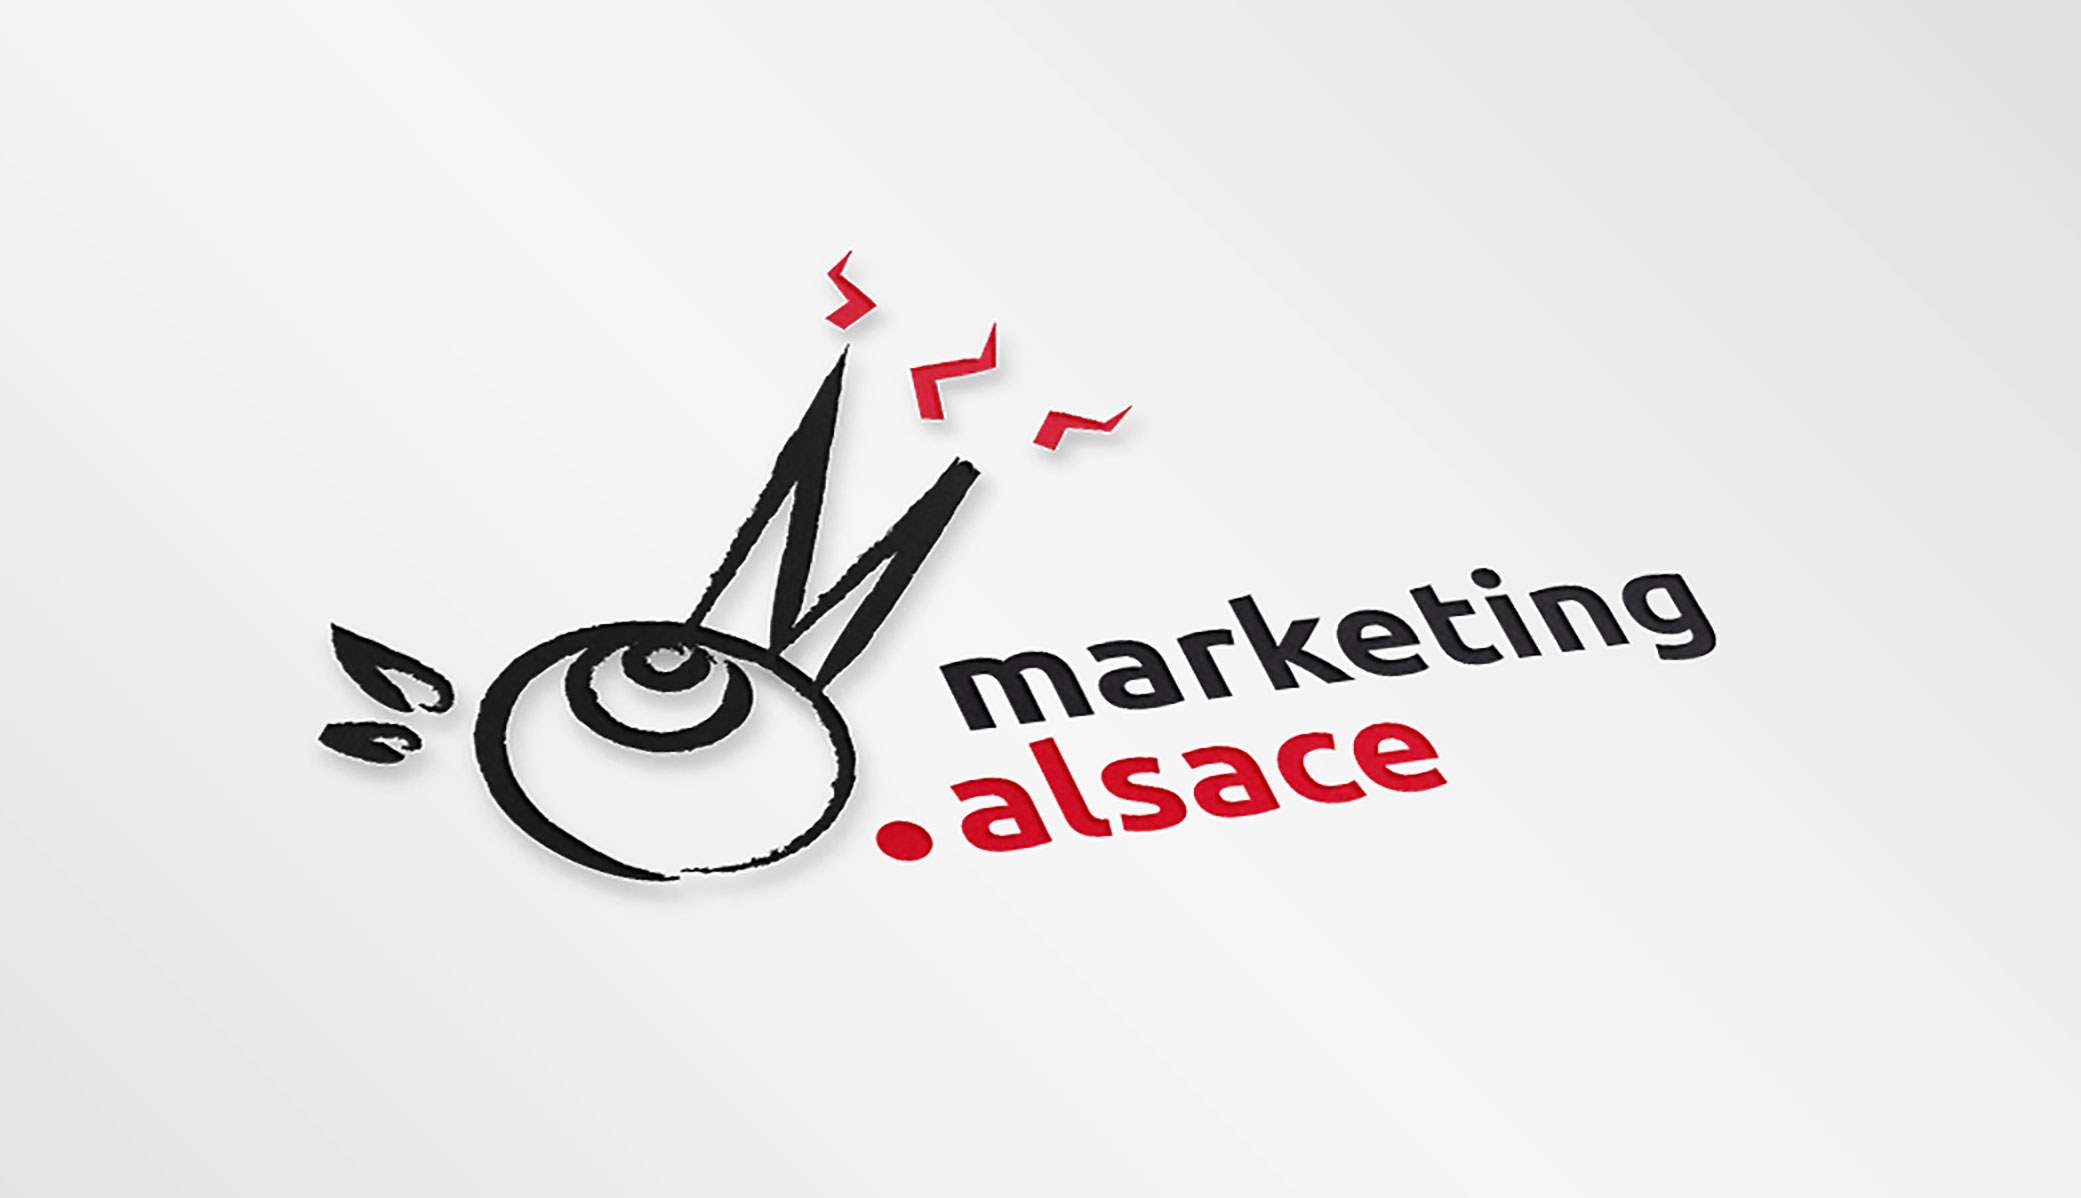 MARKETING ALSACE